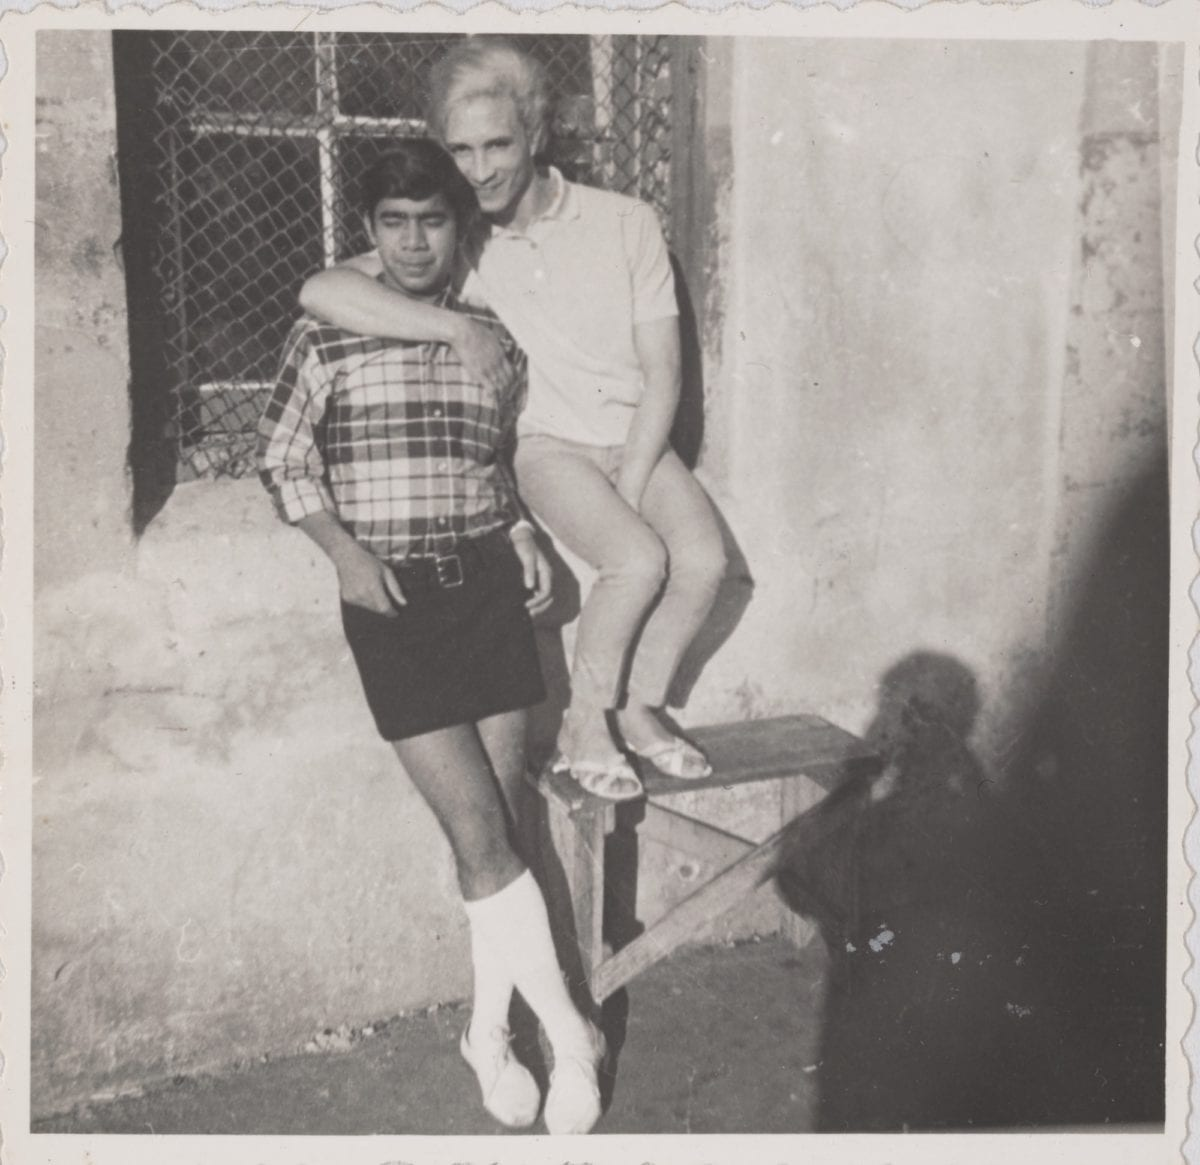 Brian and Kewpie (in their 20s) in Rutgers street, circa 1955 to 1980